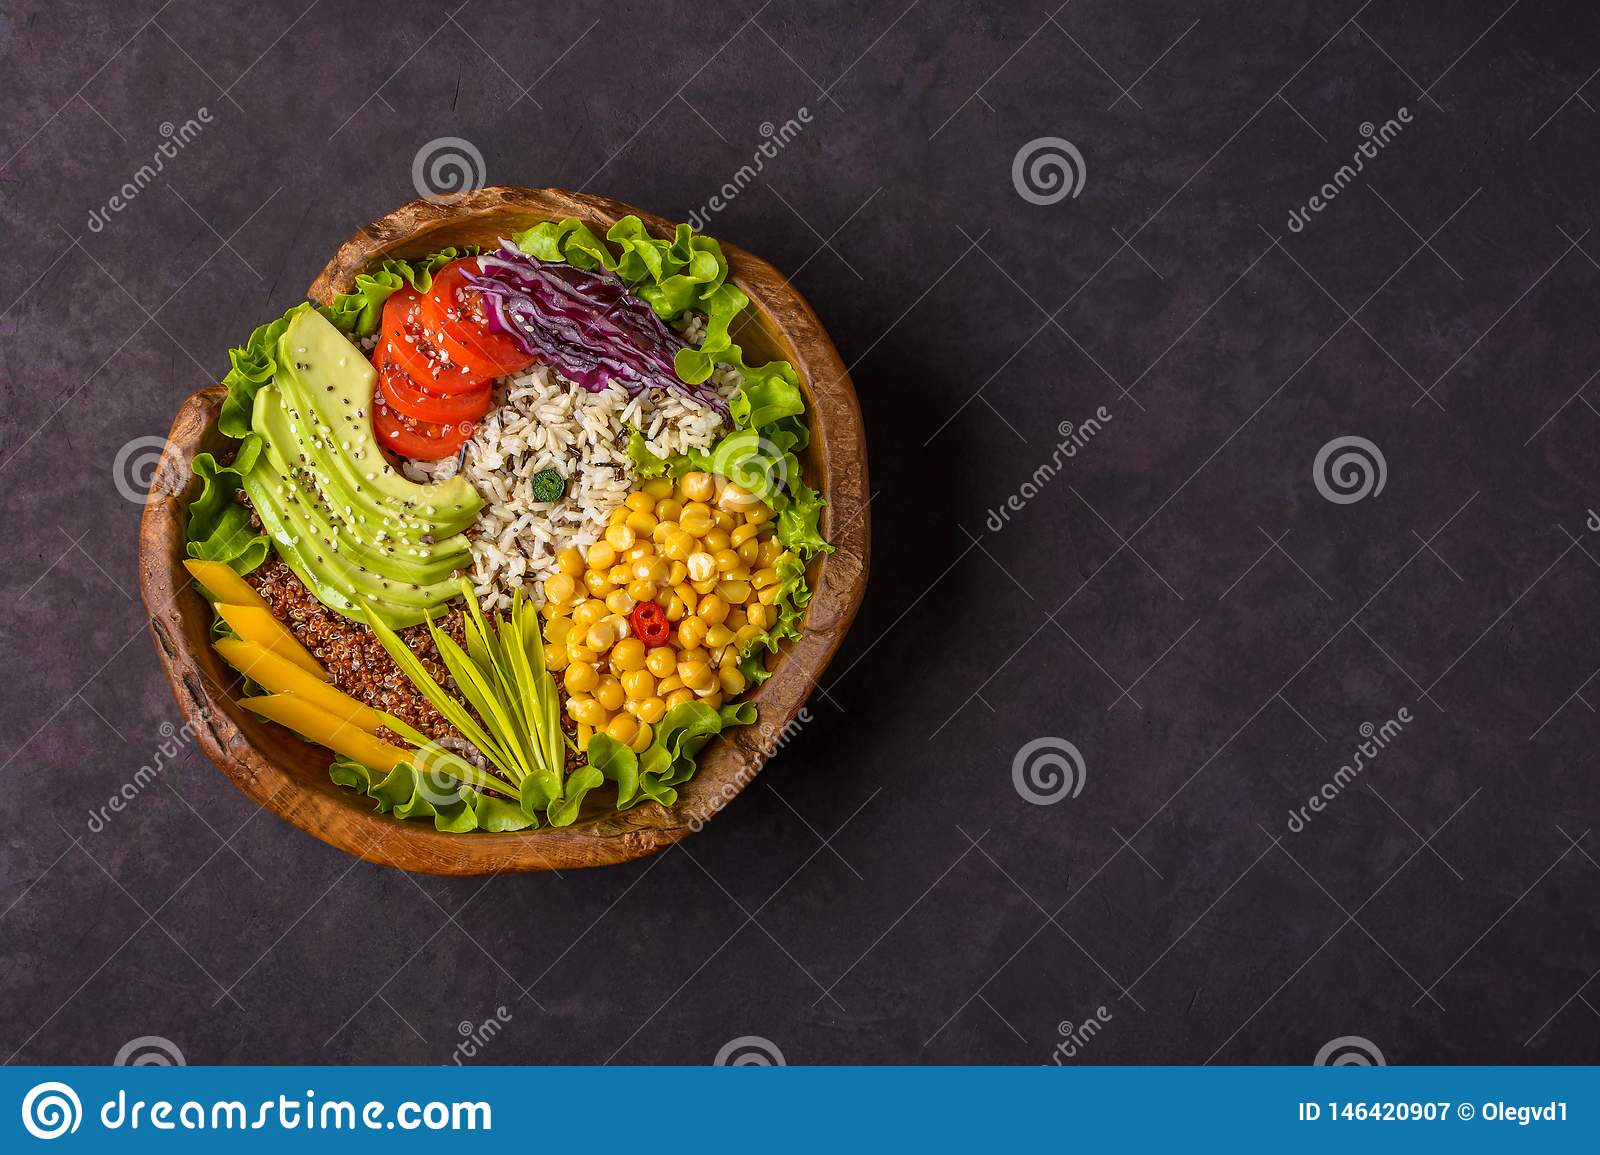 Wooden bowl with chickpea, avocado, wild rice, quinoa, tomatoes, greens, cabbage, lettuce on dark stone background. Vegetarian